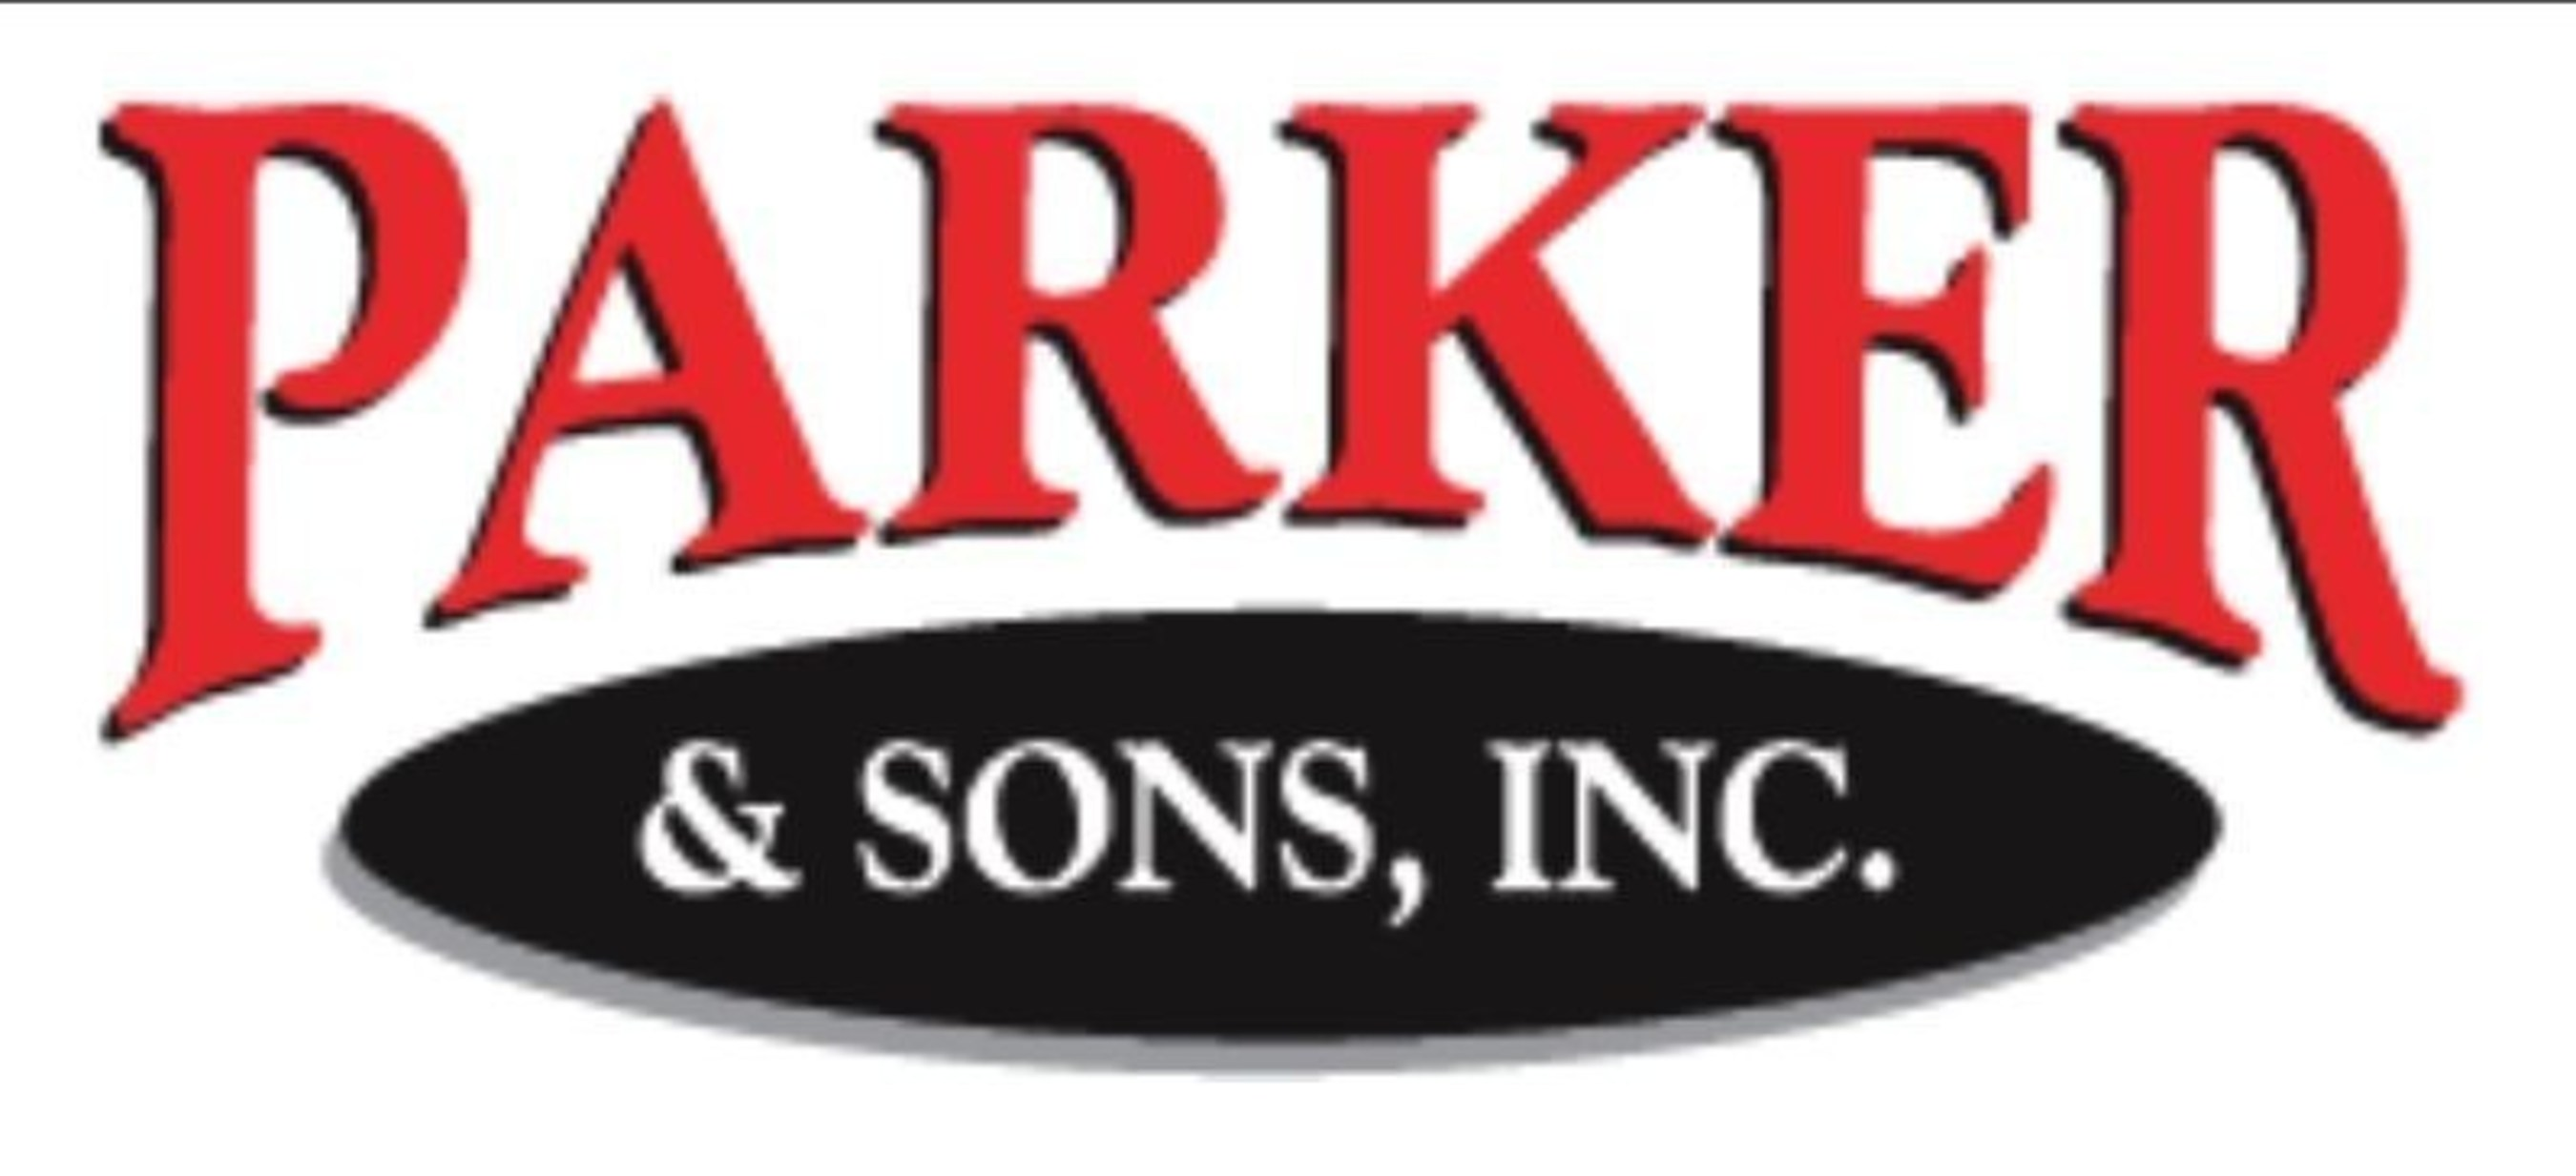 Parker and Sons Creates a Triangle of Mutual Benefit With the Special Olympics